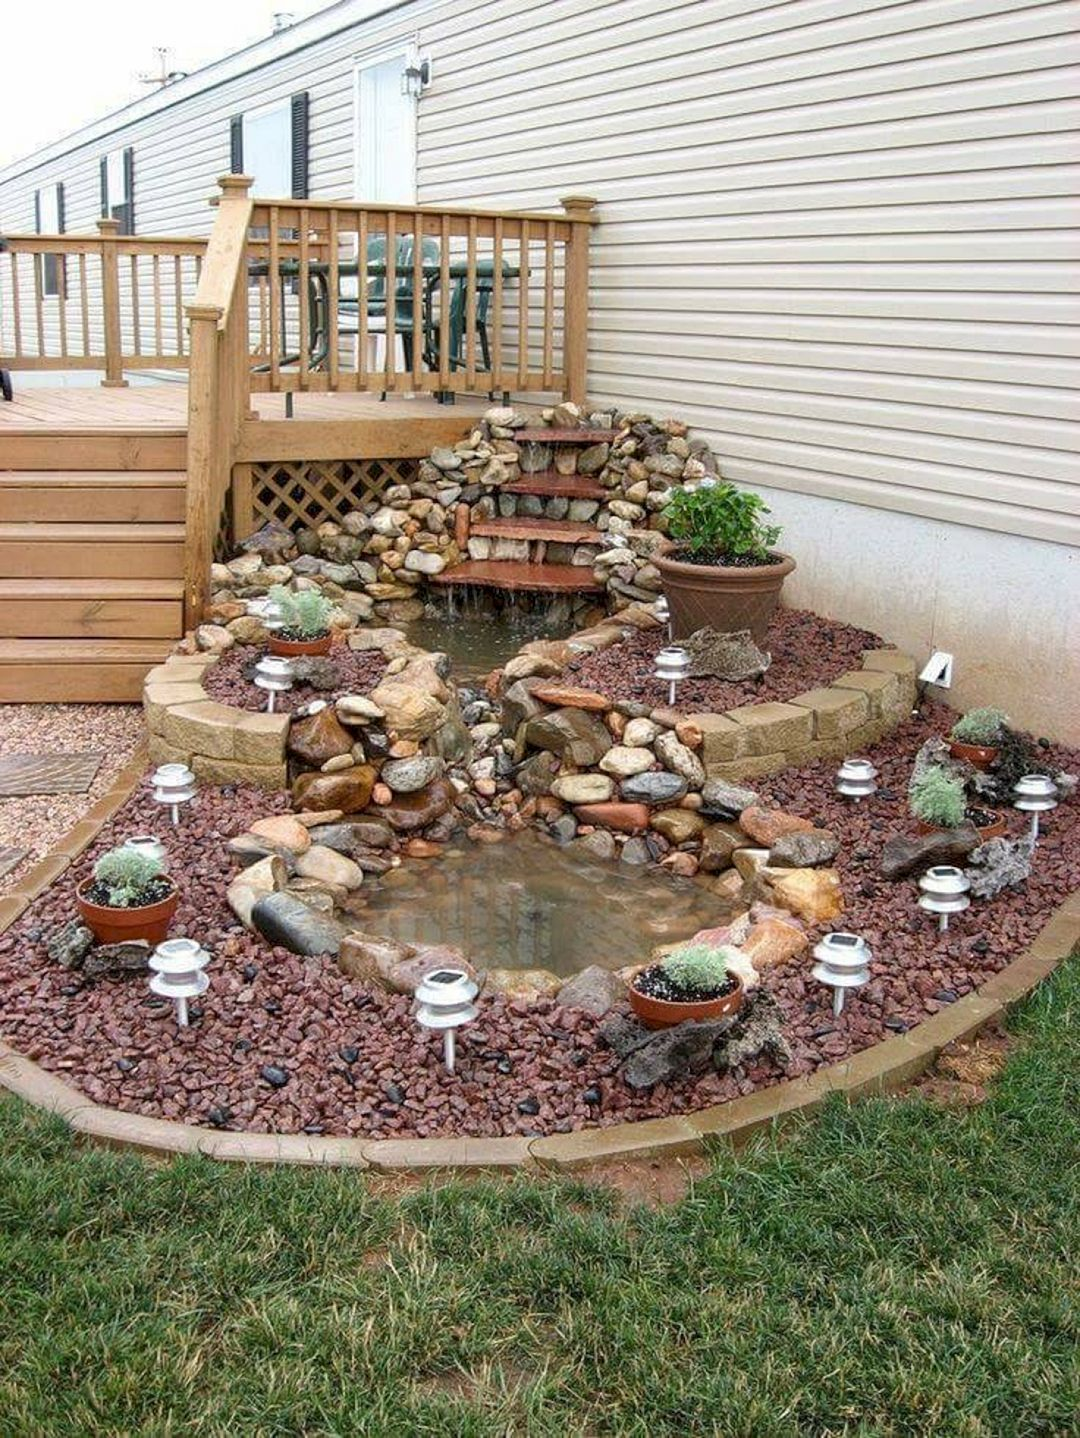 90 DIY Wonderful Tire Garden Ponds On a Budget Inspirations ...